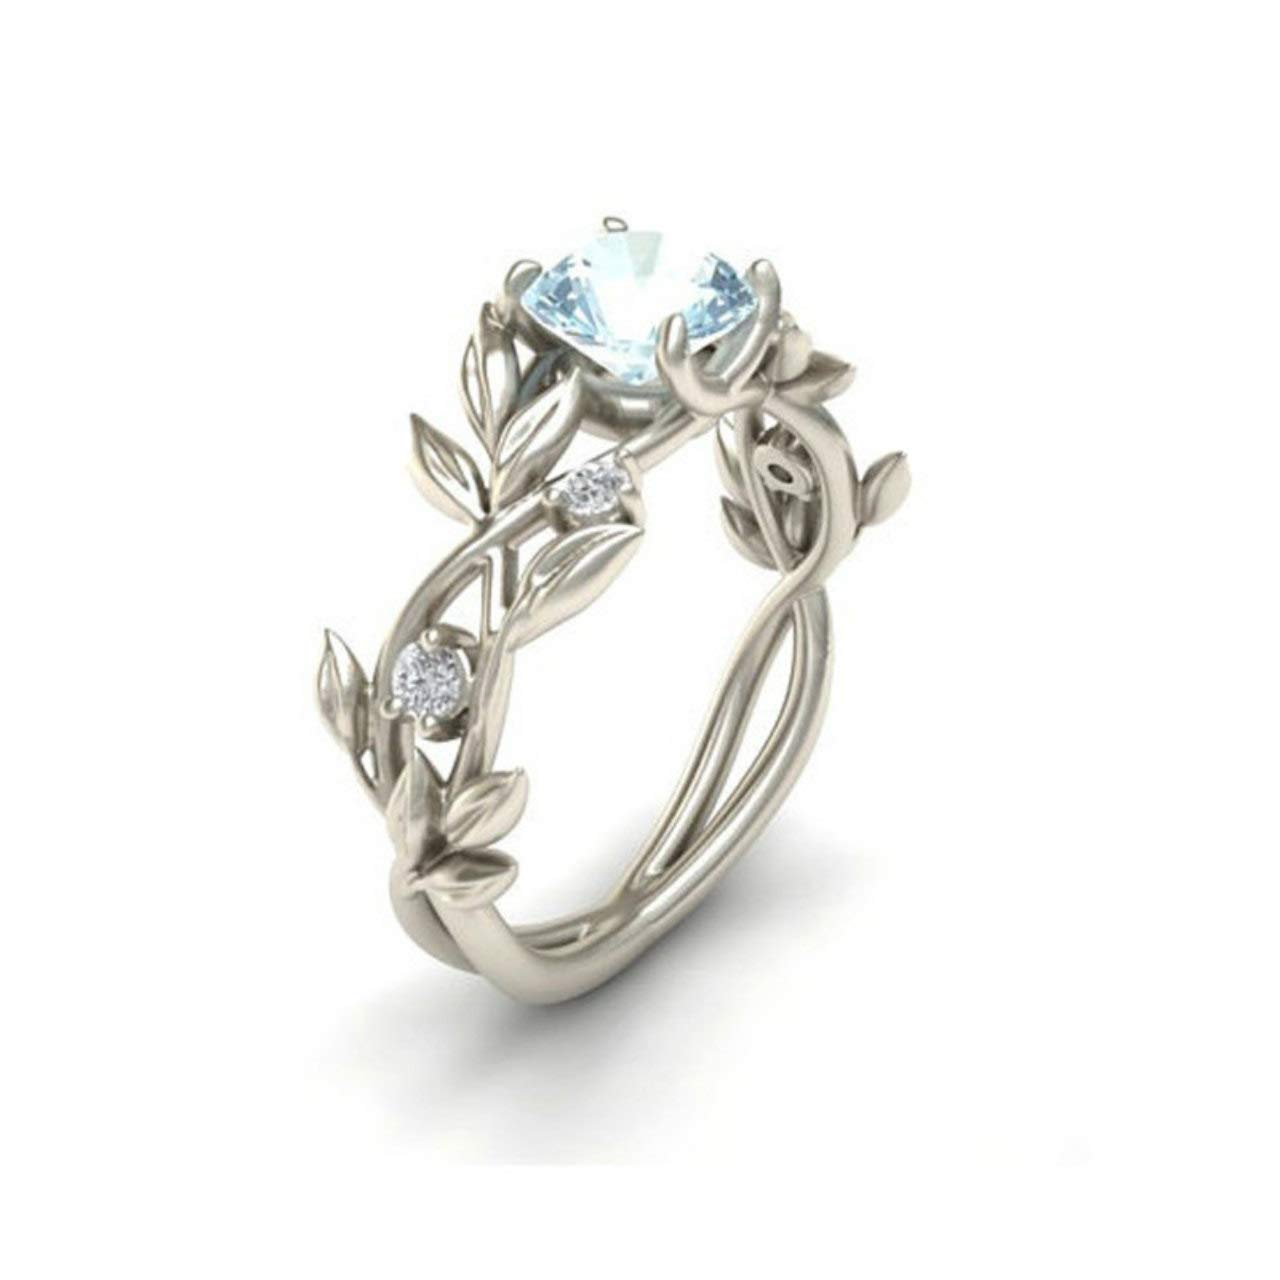 Women Rings, CieKen Silver Floral Diamond Flower Rings Wedding Gift for Ladies